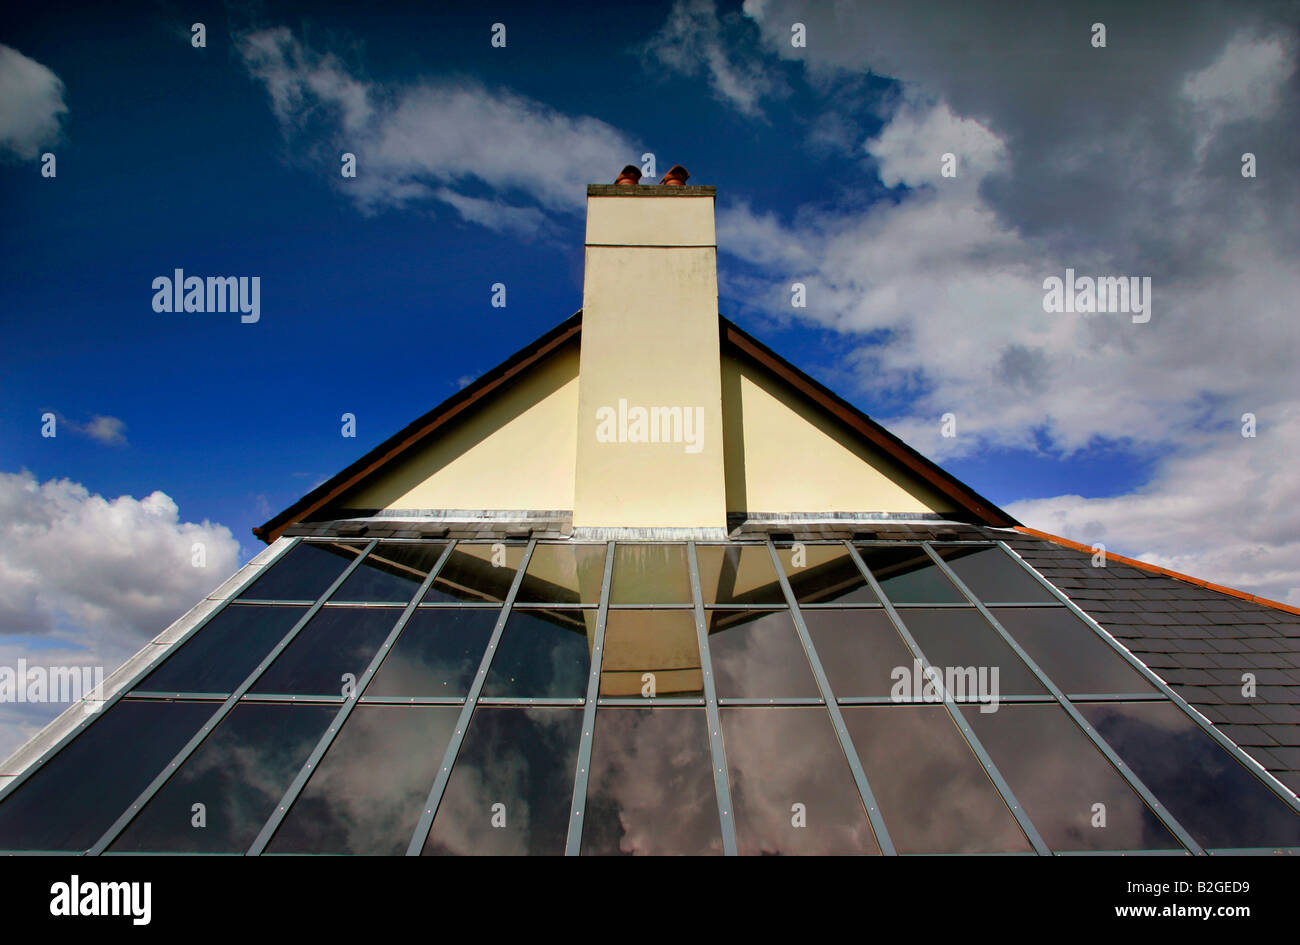 Solar panels on a rooftop in Devon UK reflecting a pitched roof and chimney against a blue sky with clouds. - Stock Image